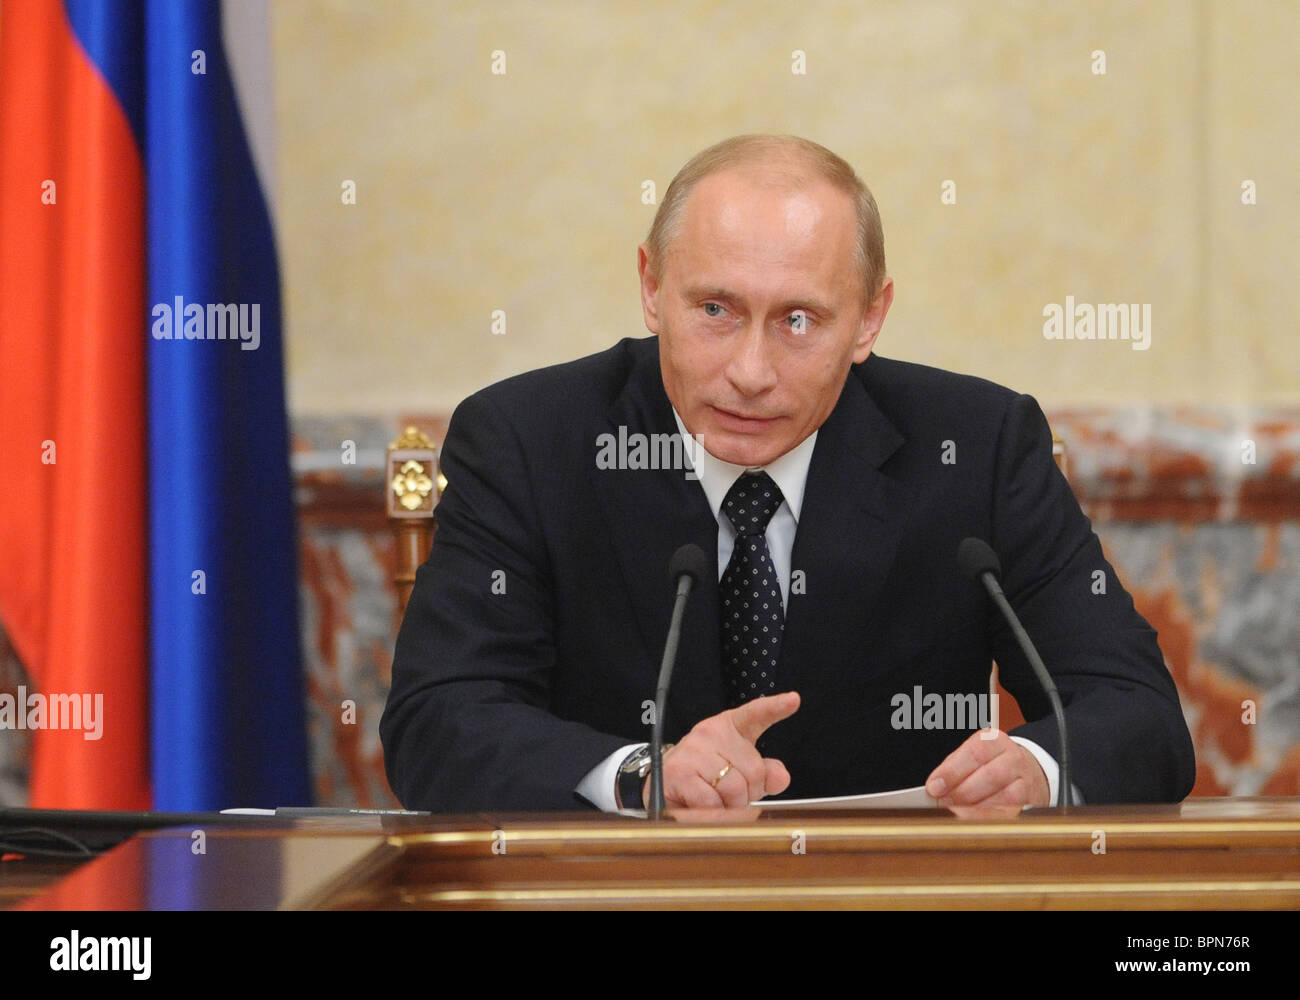 Russian government in session - Stock Image